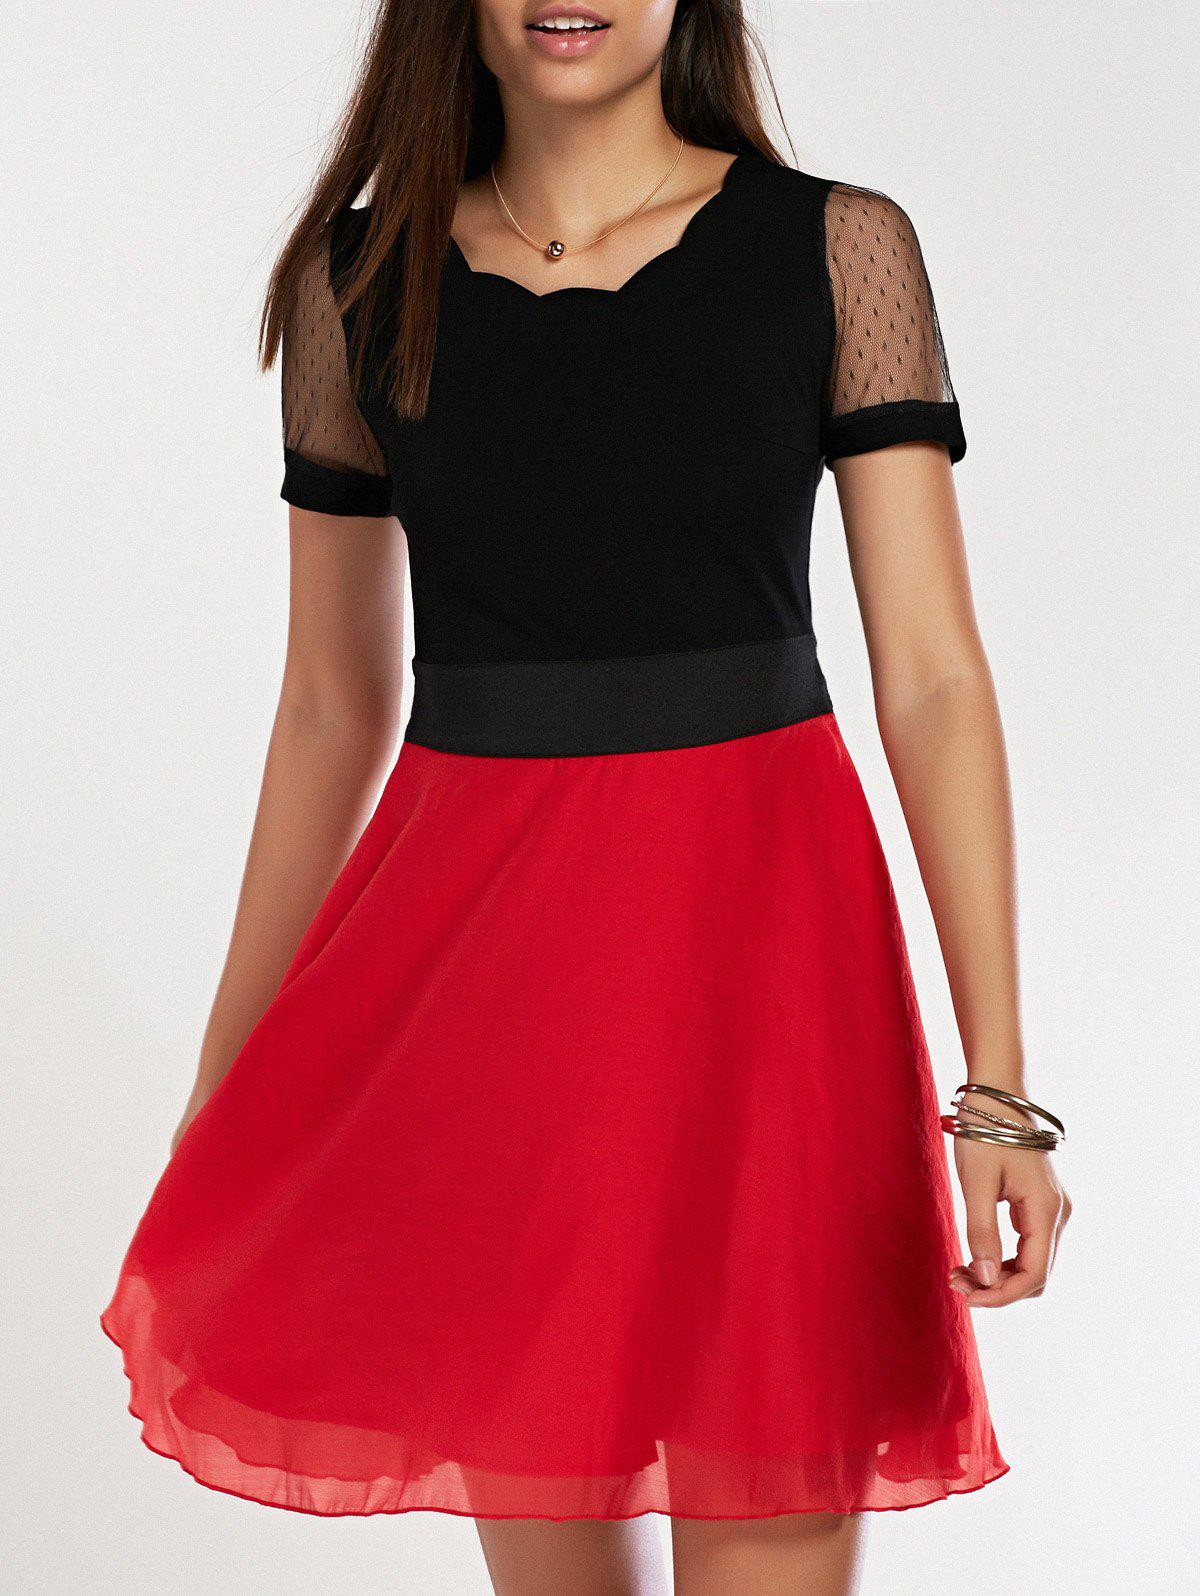 Hit Color Short Sleeve A-Line Dress - 2XL RED/BLACK